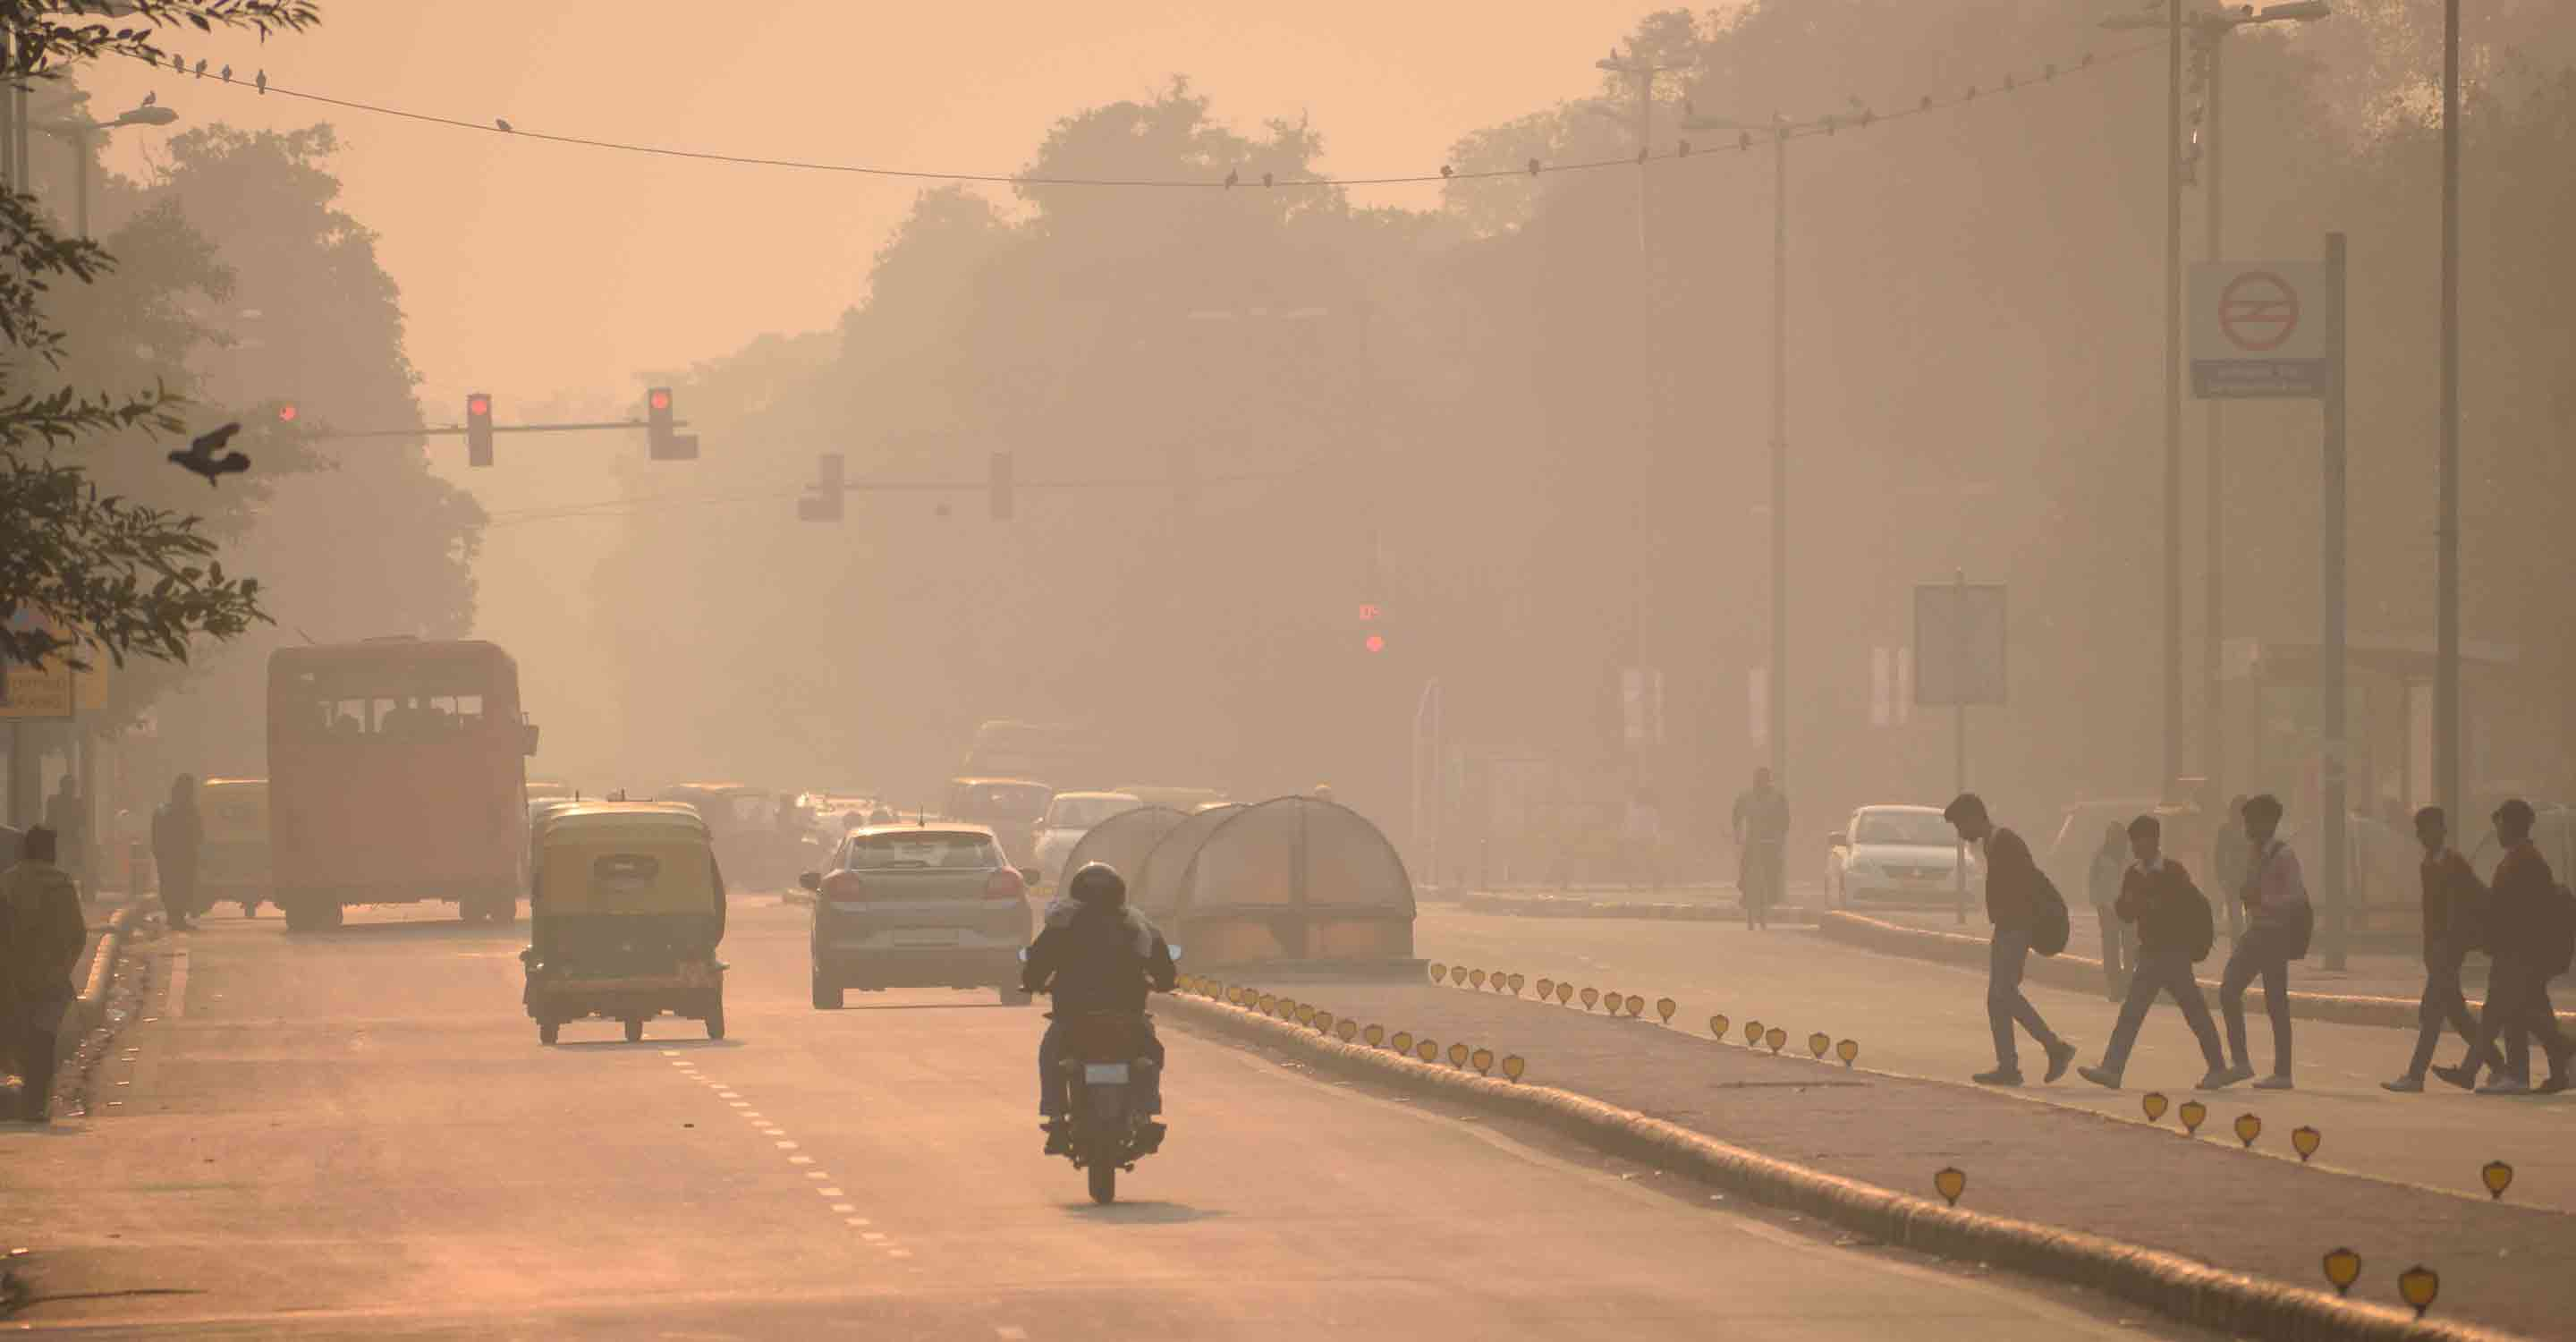 New WHO air quality guidelines will save lives